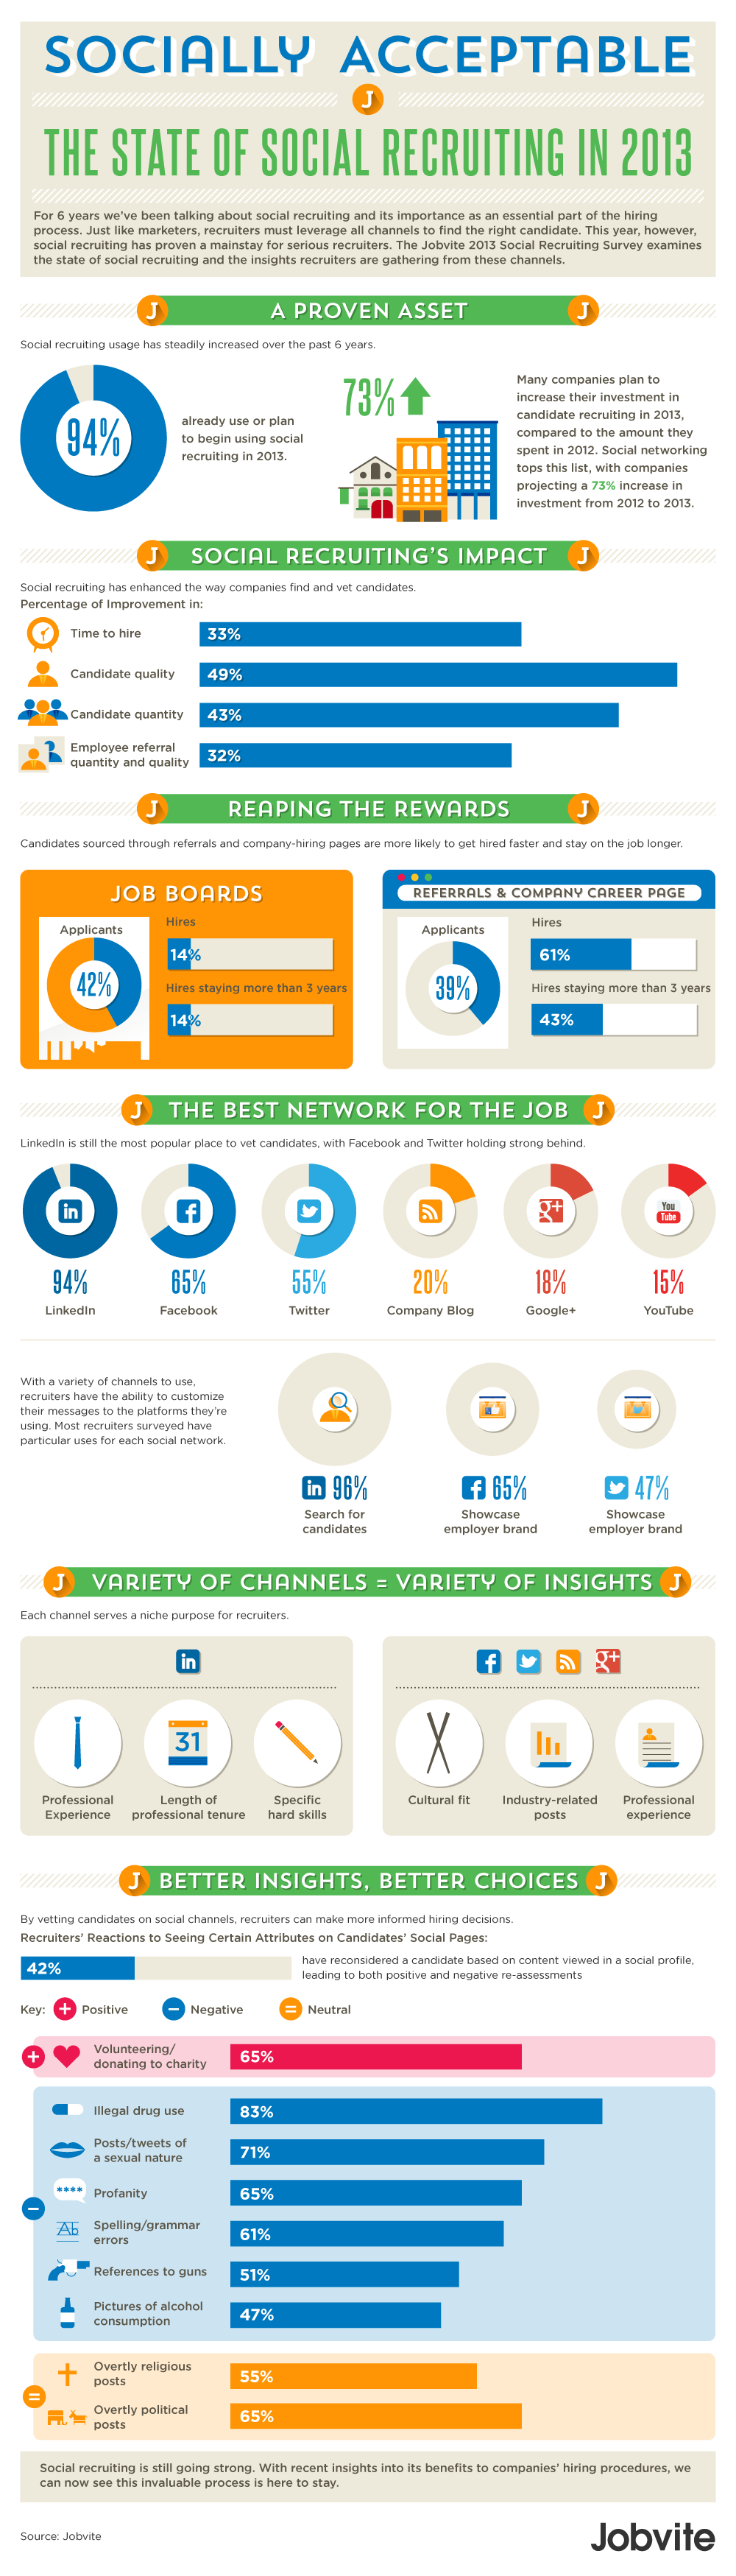 The State of Social Recruiting in 2013